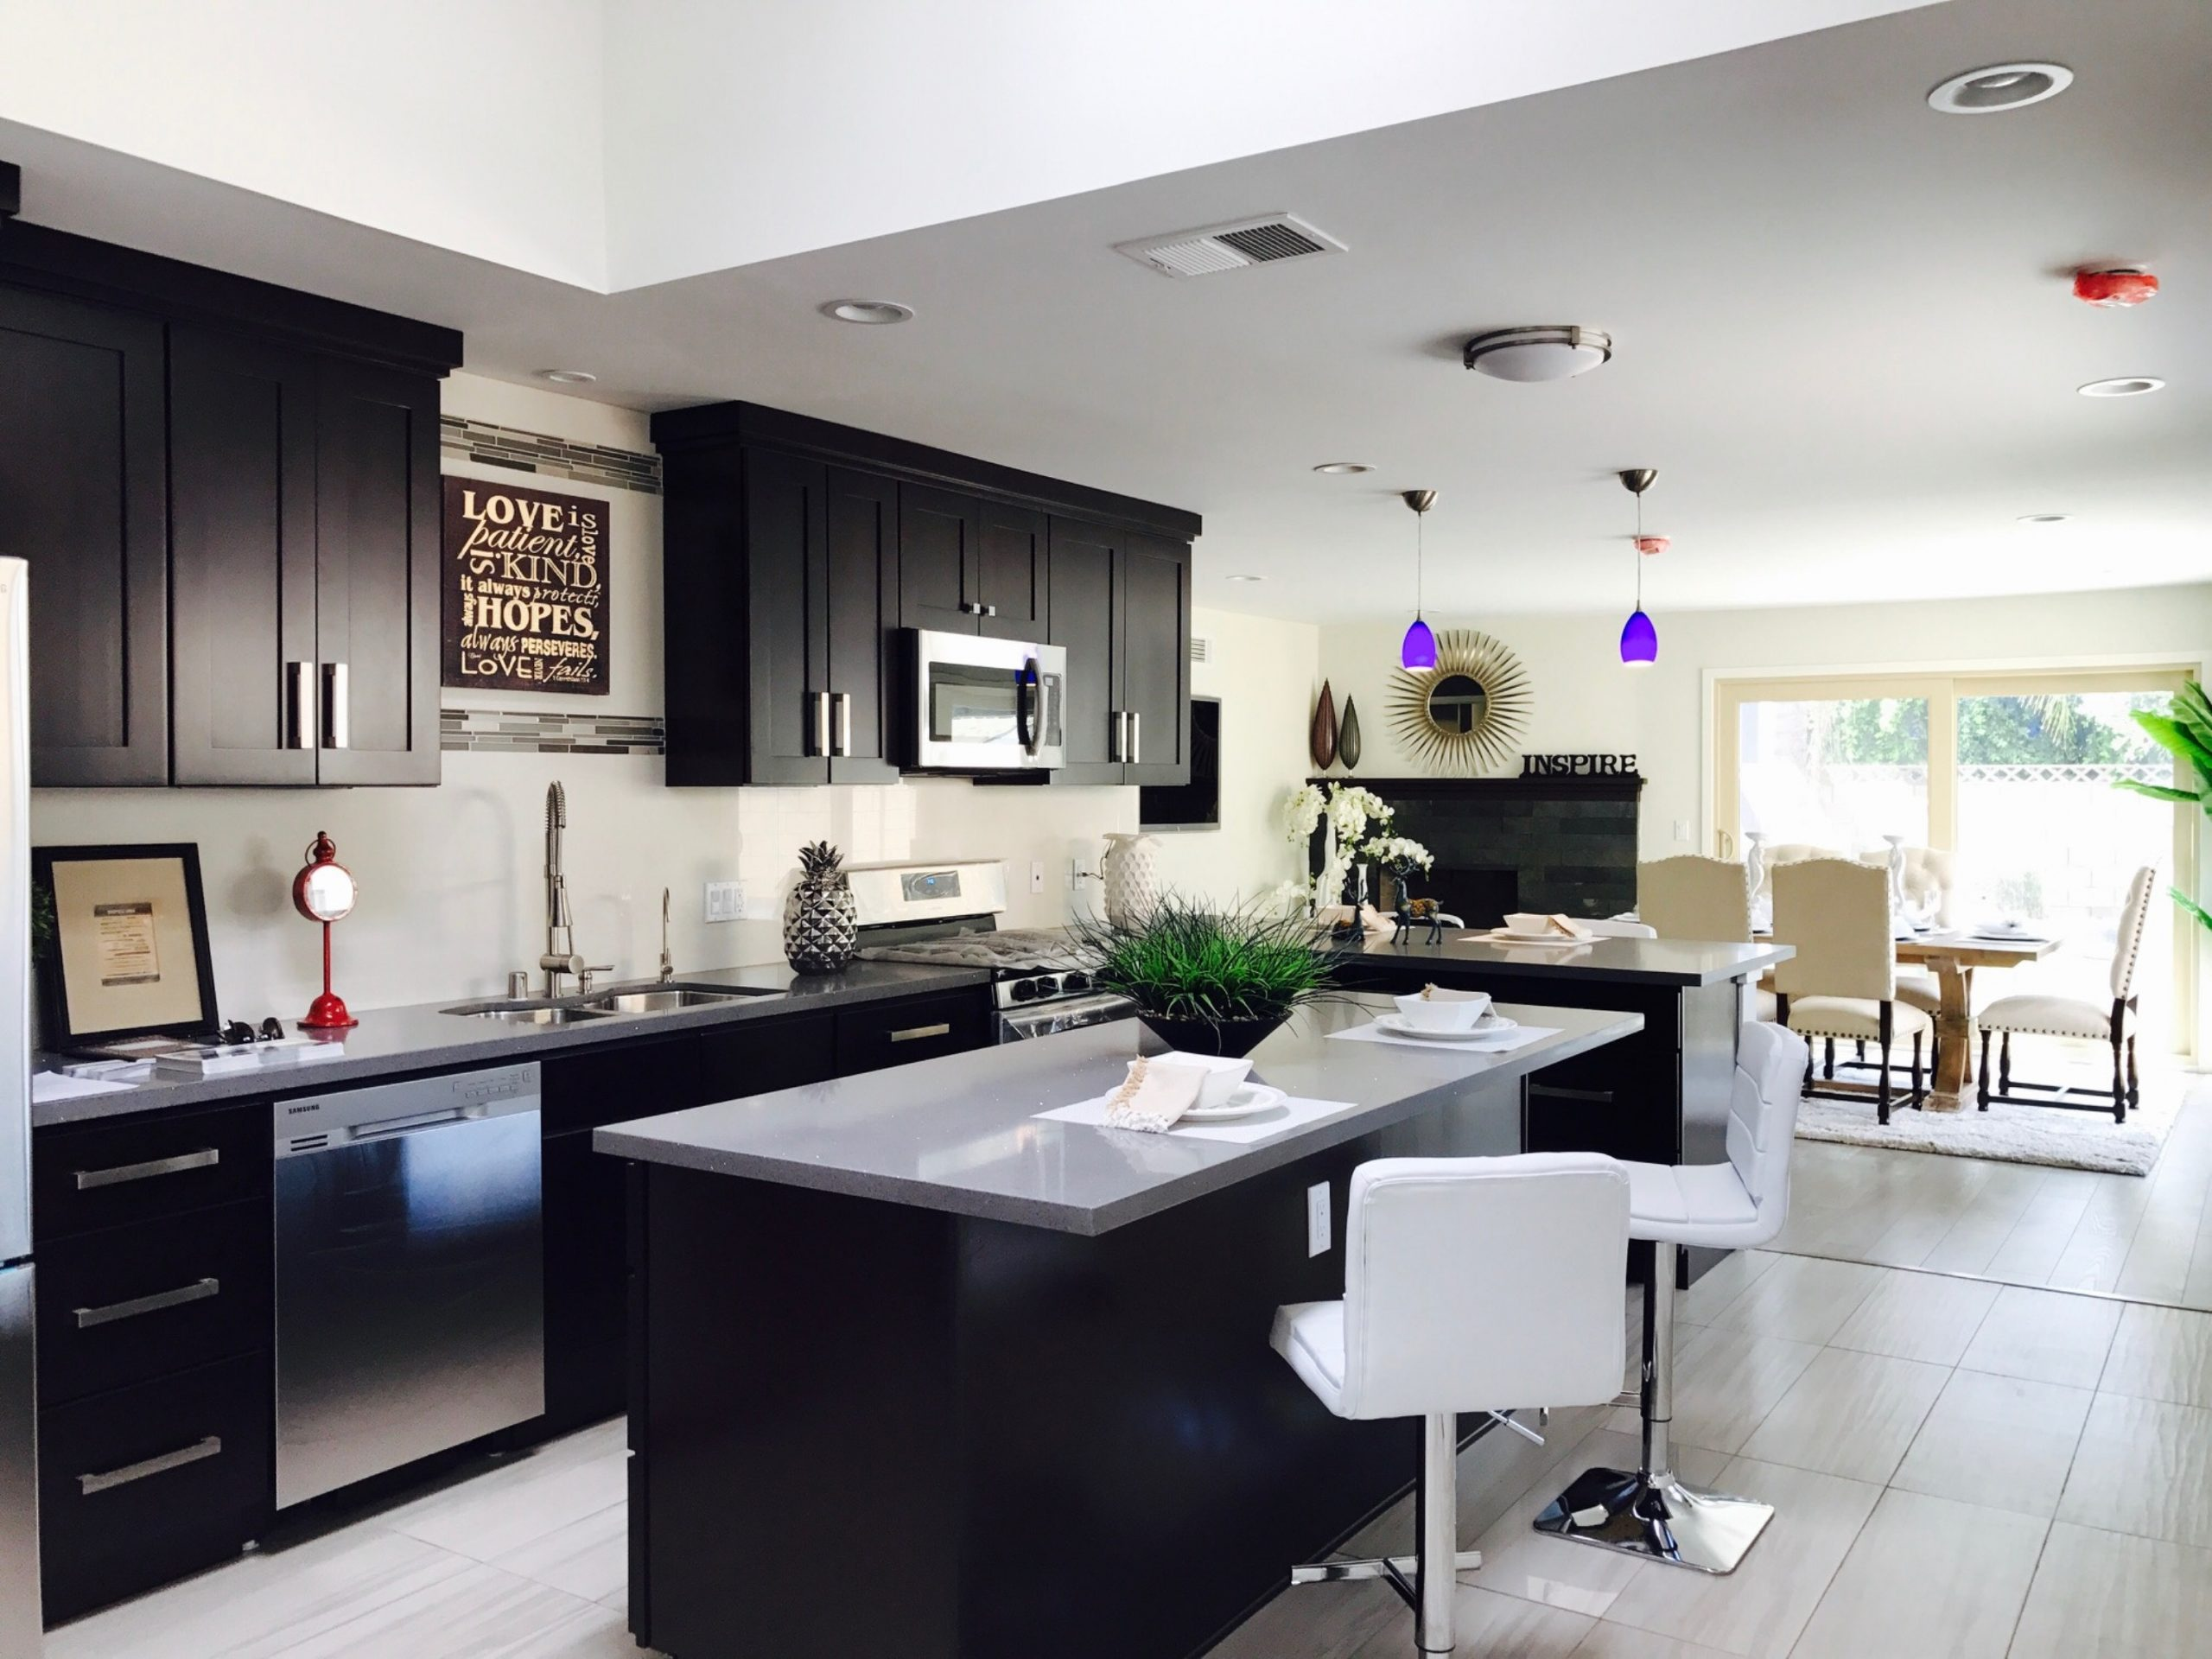 Omaha Remodeling Co